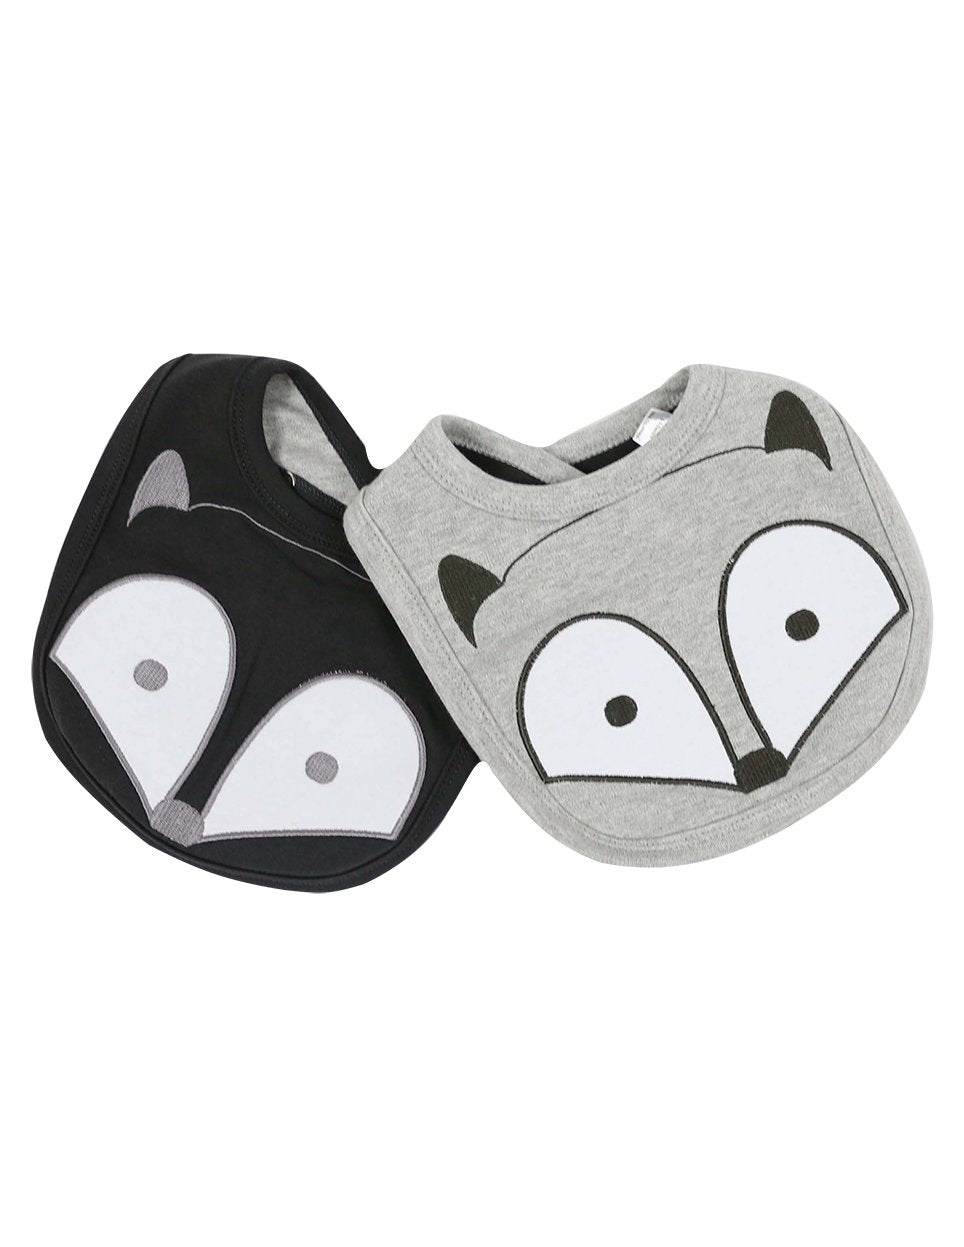 KORANGO Baby Mr Fox Bib - 2 Pack